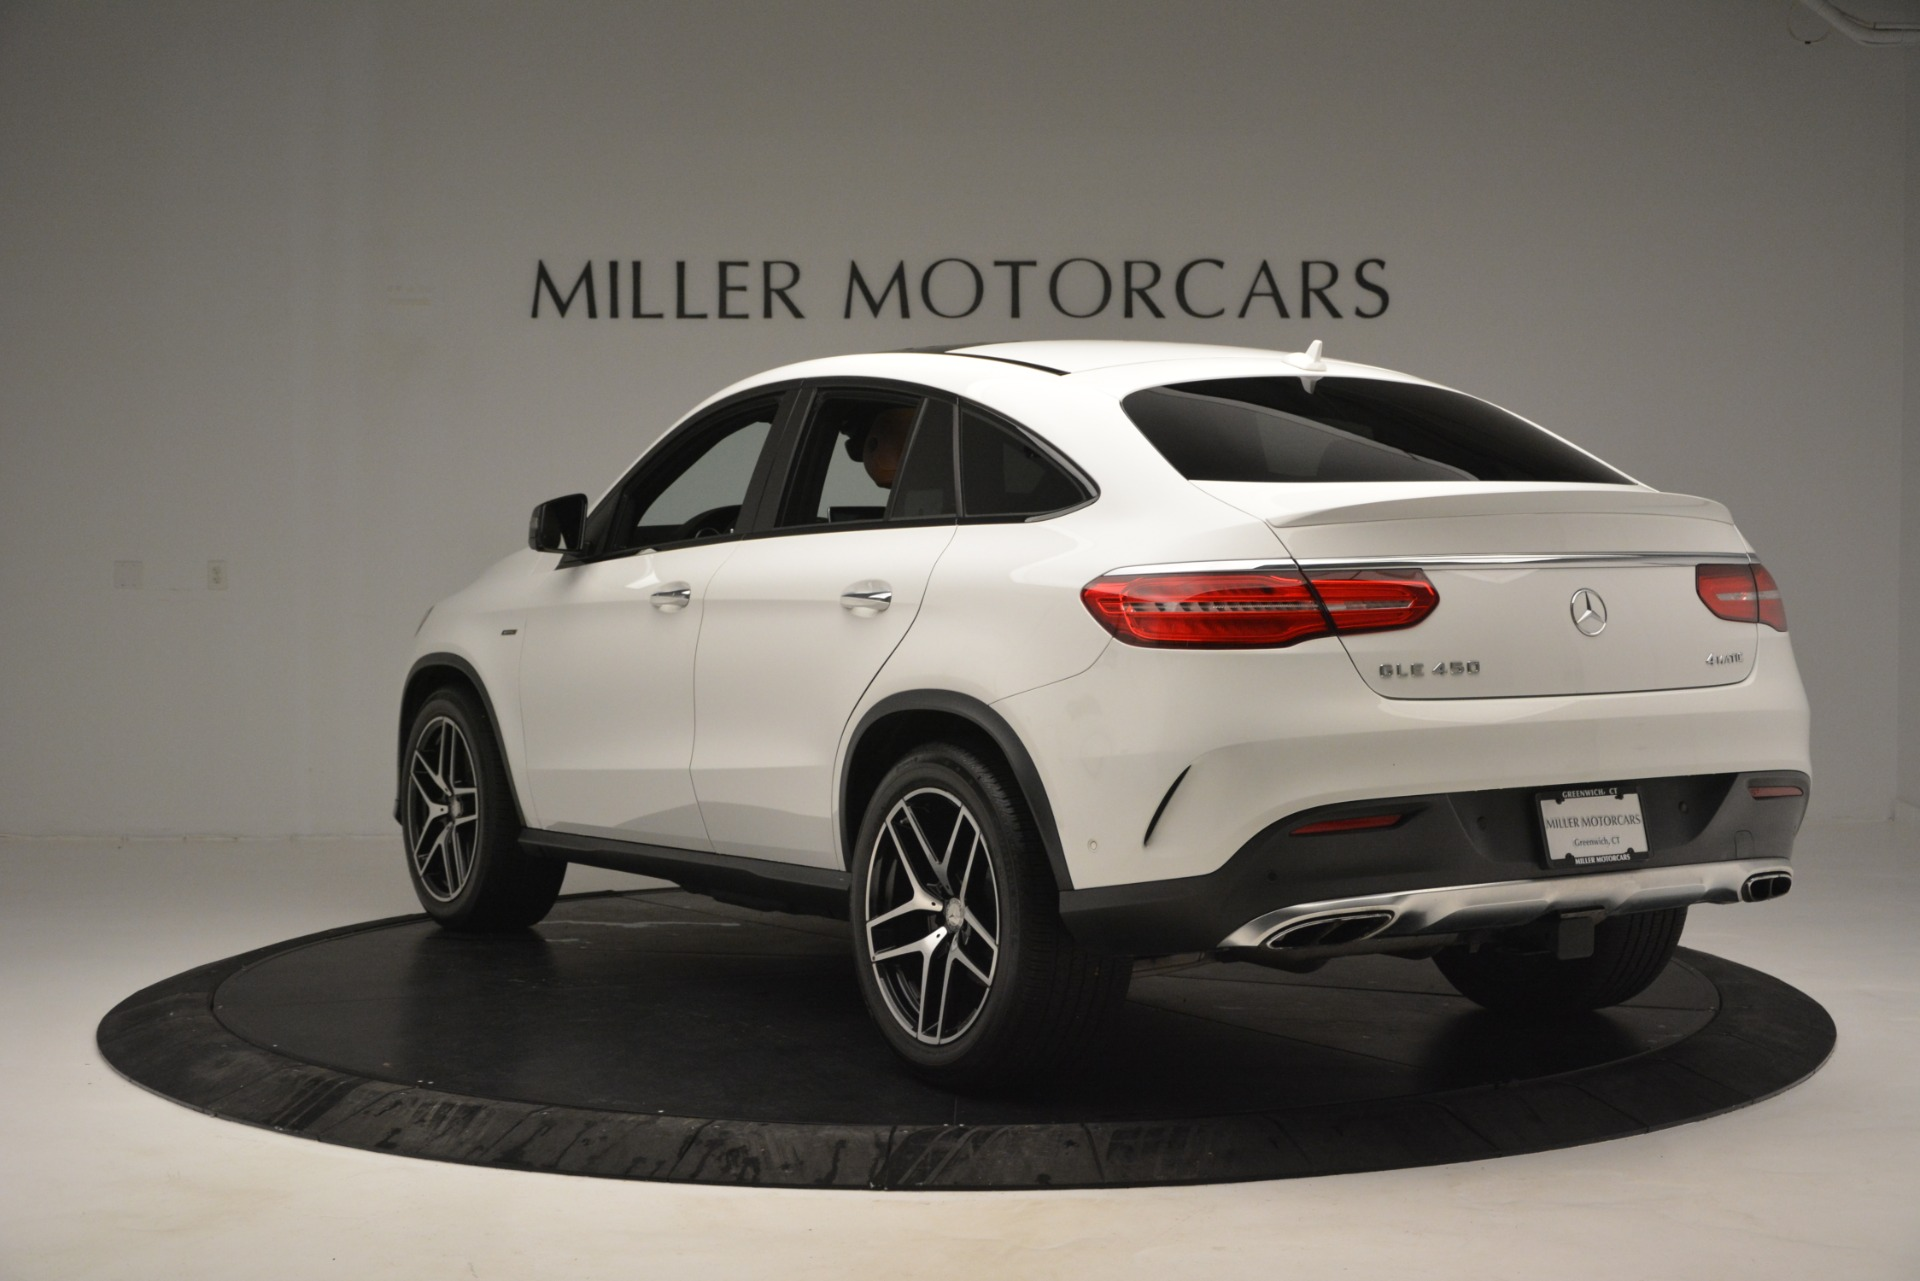 Used 2016 Mercedes-Benz GLE 450 AMG Coupe 4MATIC For Sale In Greenwich, CT 2787_p5